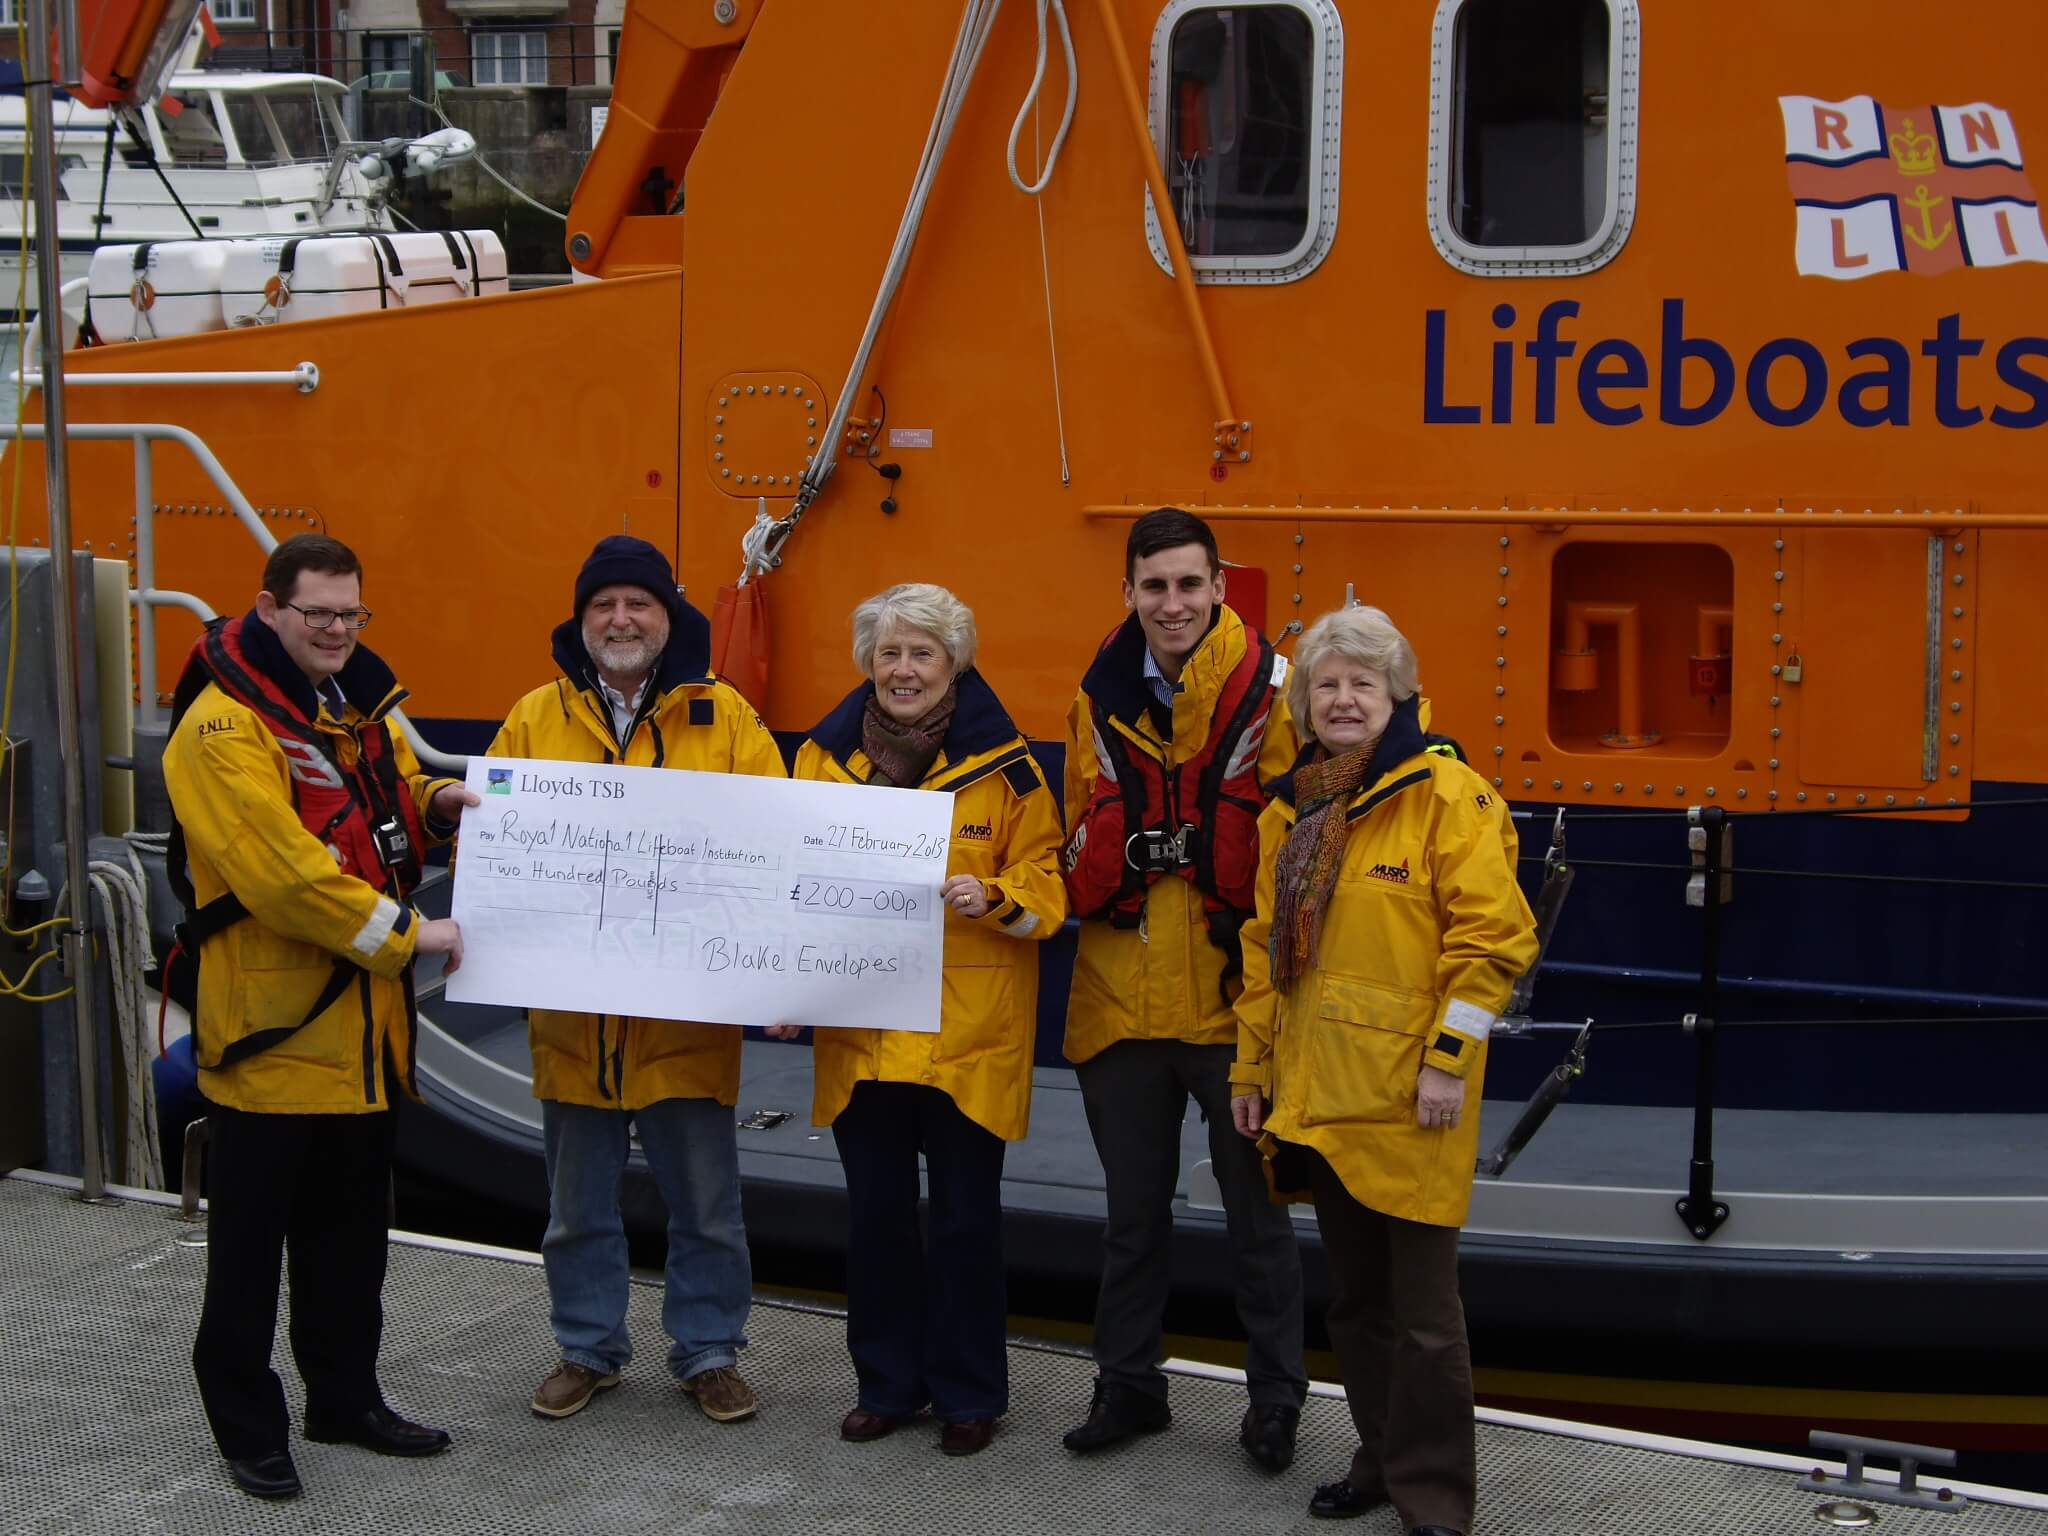 Supporting our local lifeboats